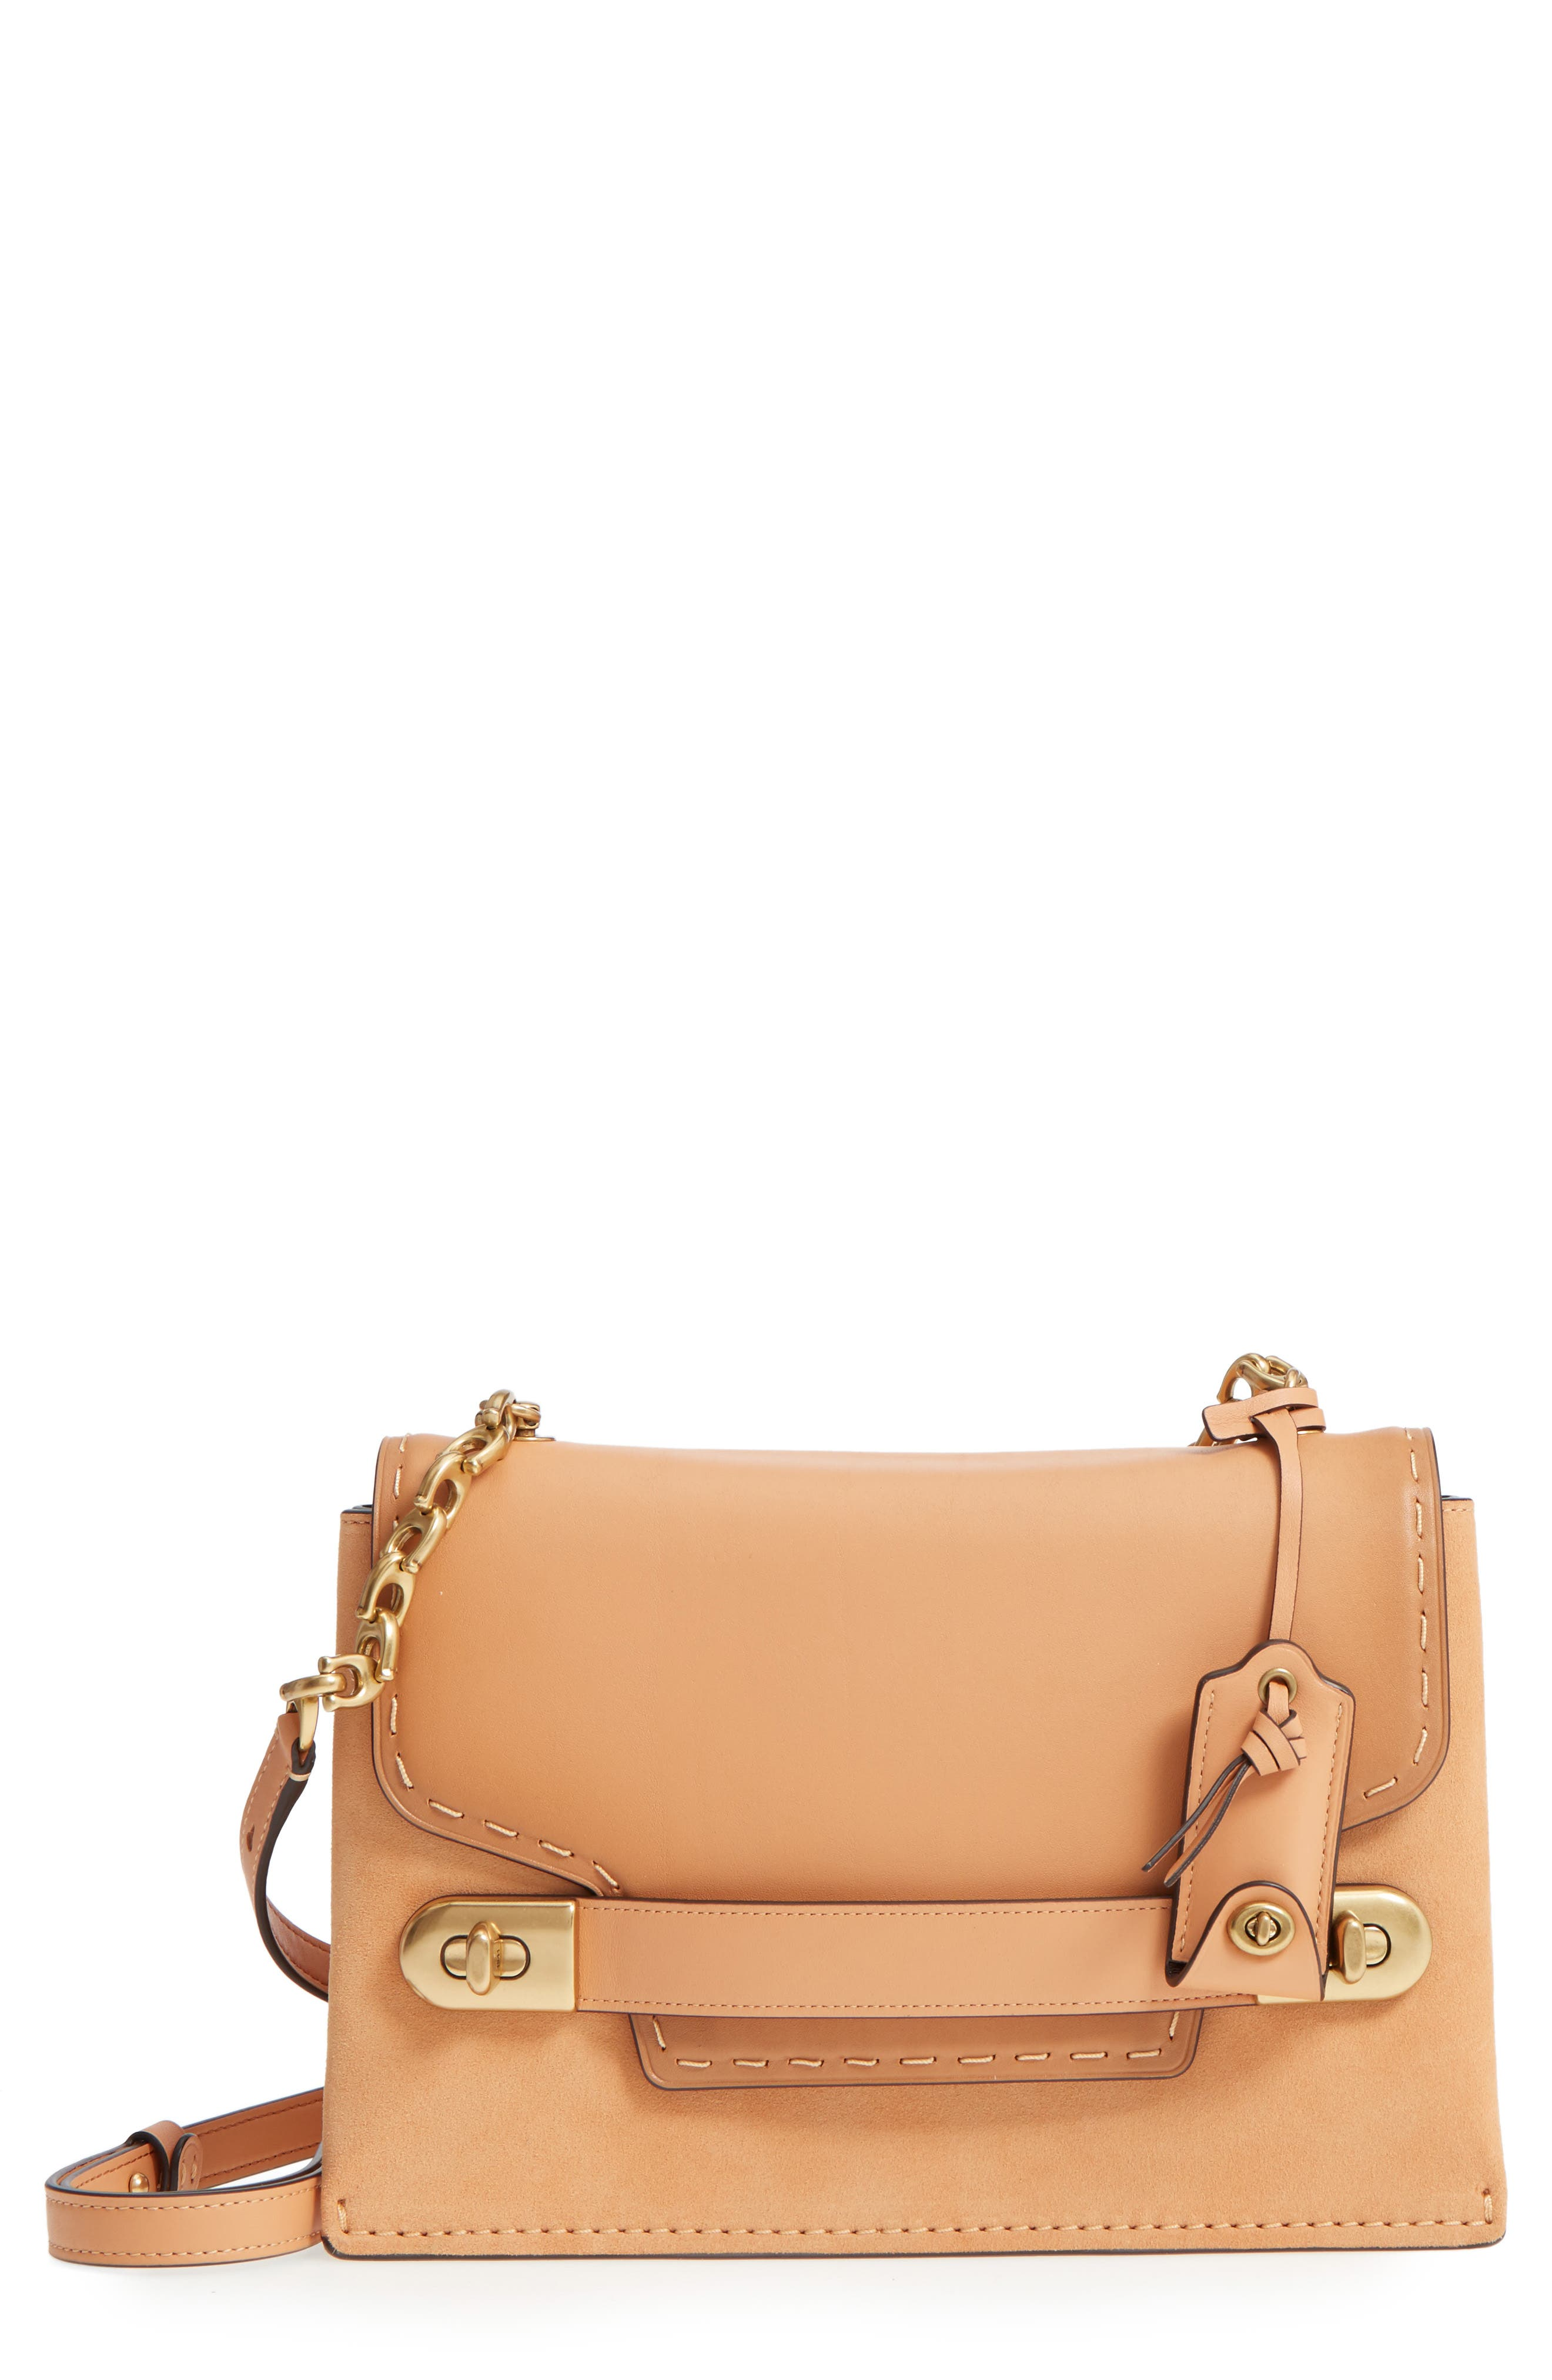 Alternate Image 1 Selected - COACH 1941 Swagger Chain Leather Crossbody Bag